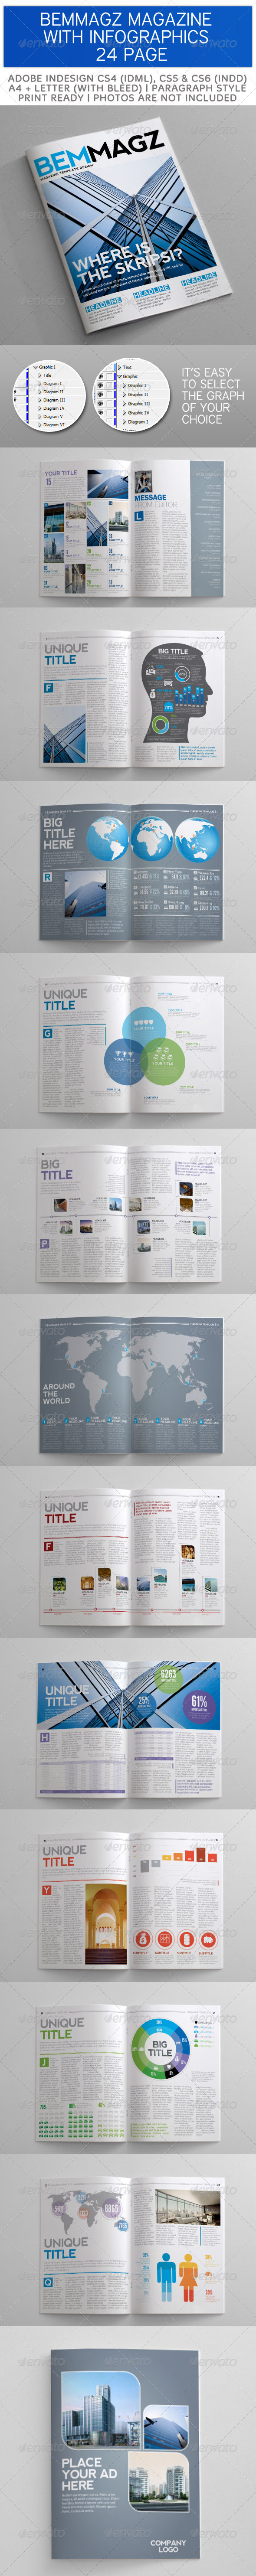 GraphicRiver BemMagz Magazine Template with Infographics 3483414